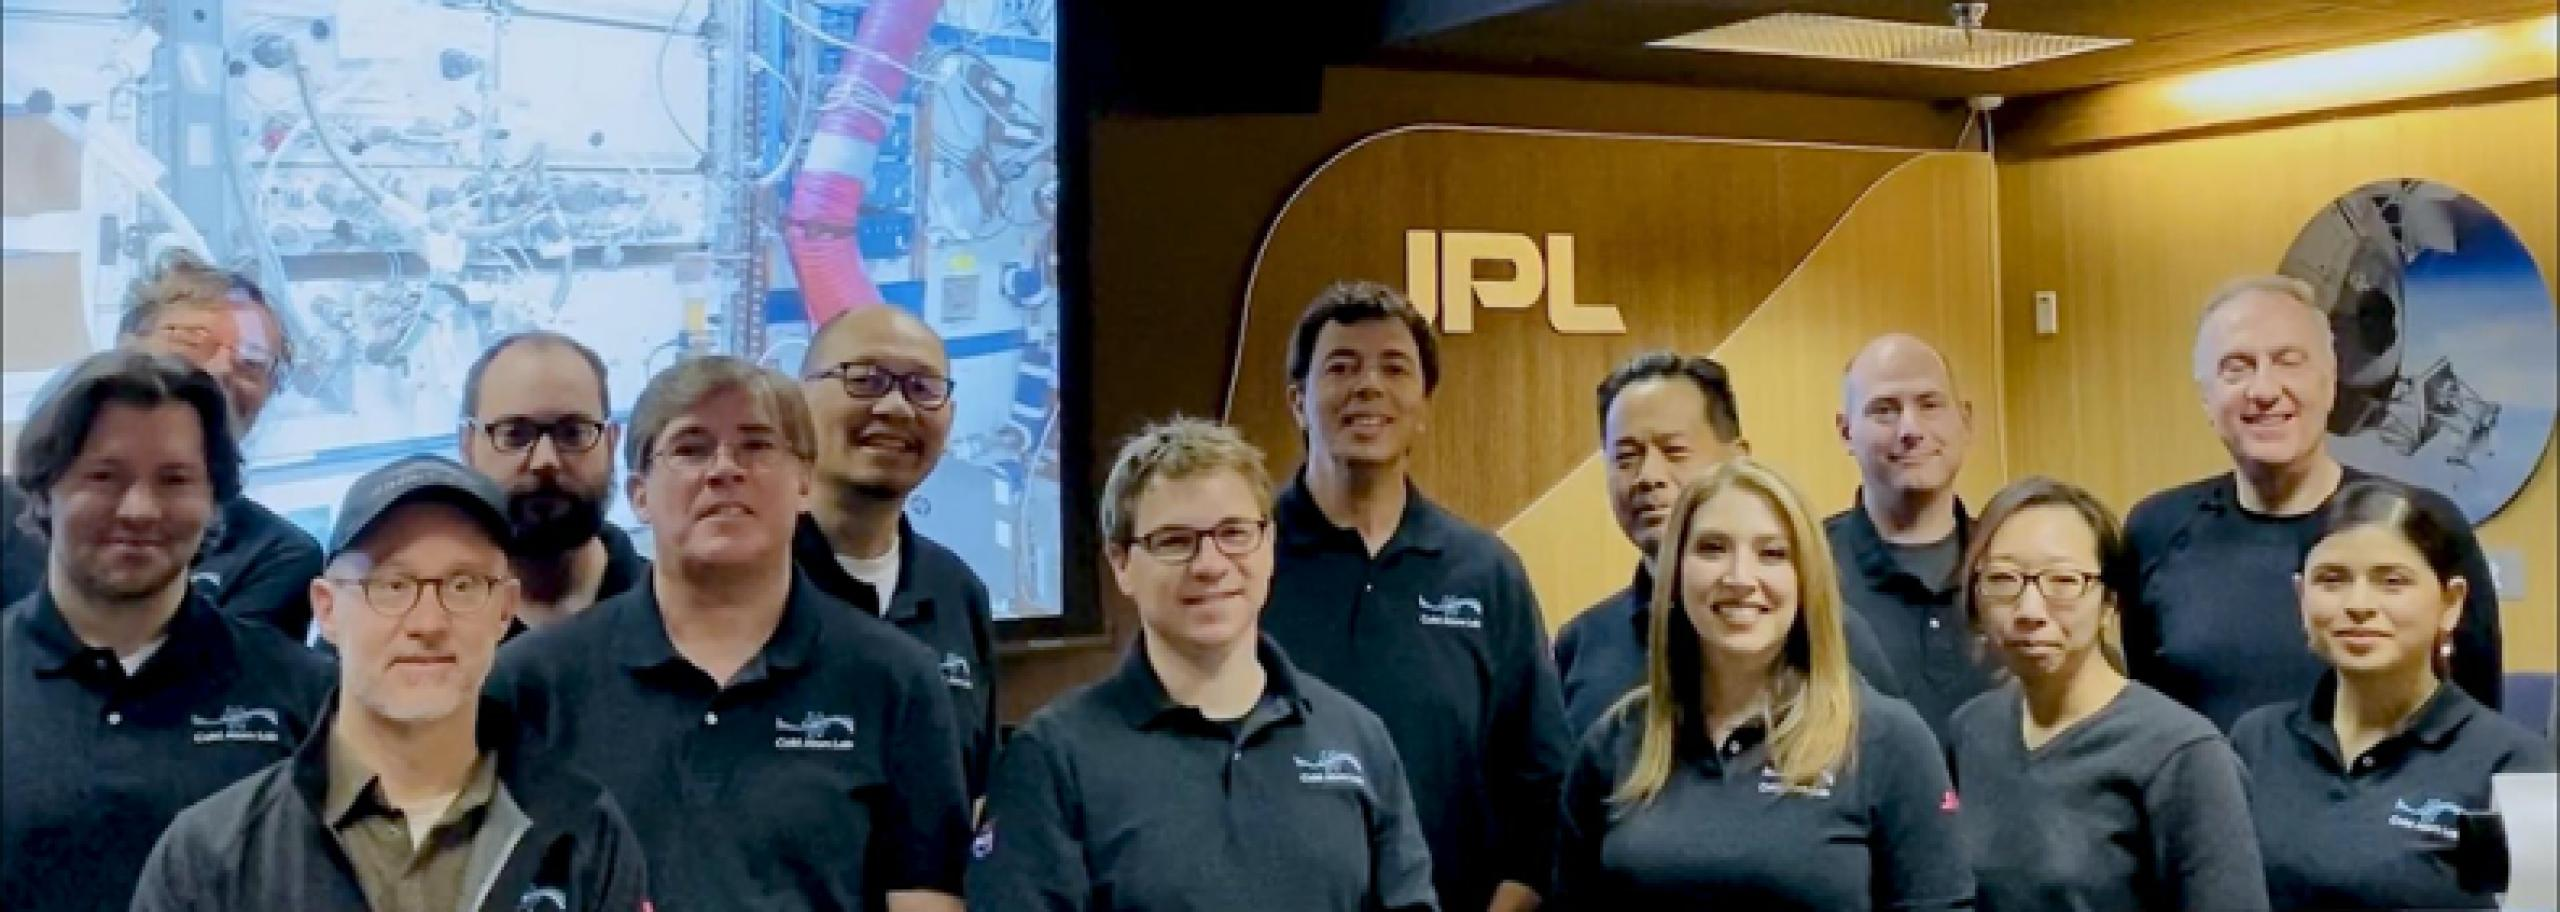 Photo of group of researchers and scientists standing in front of a monitor and JPL sign